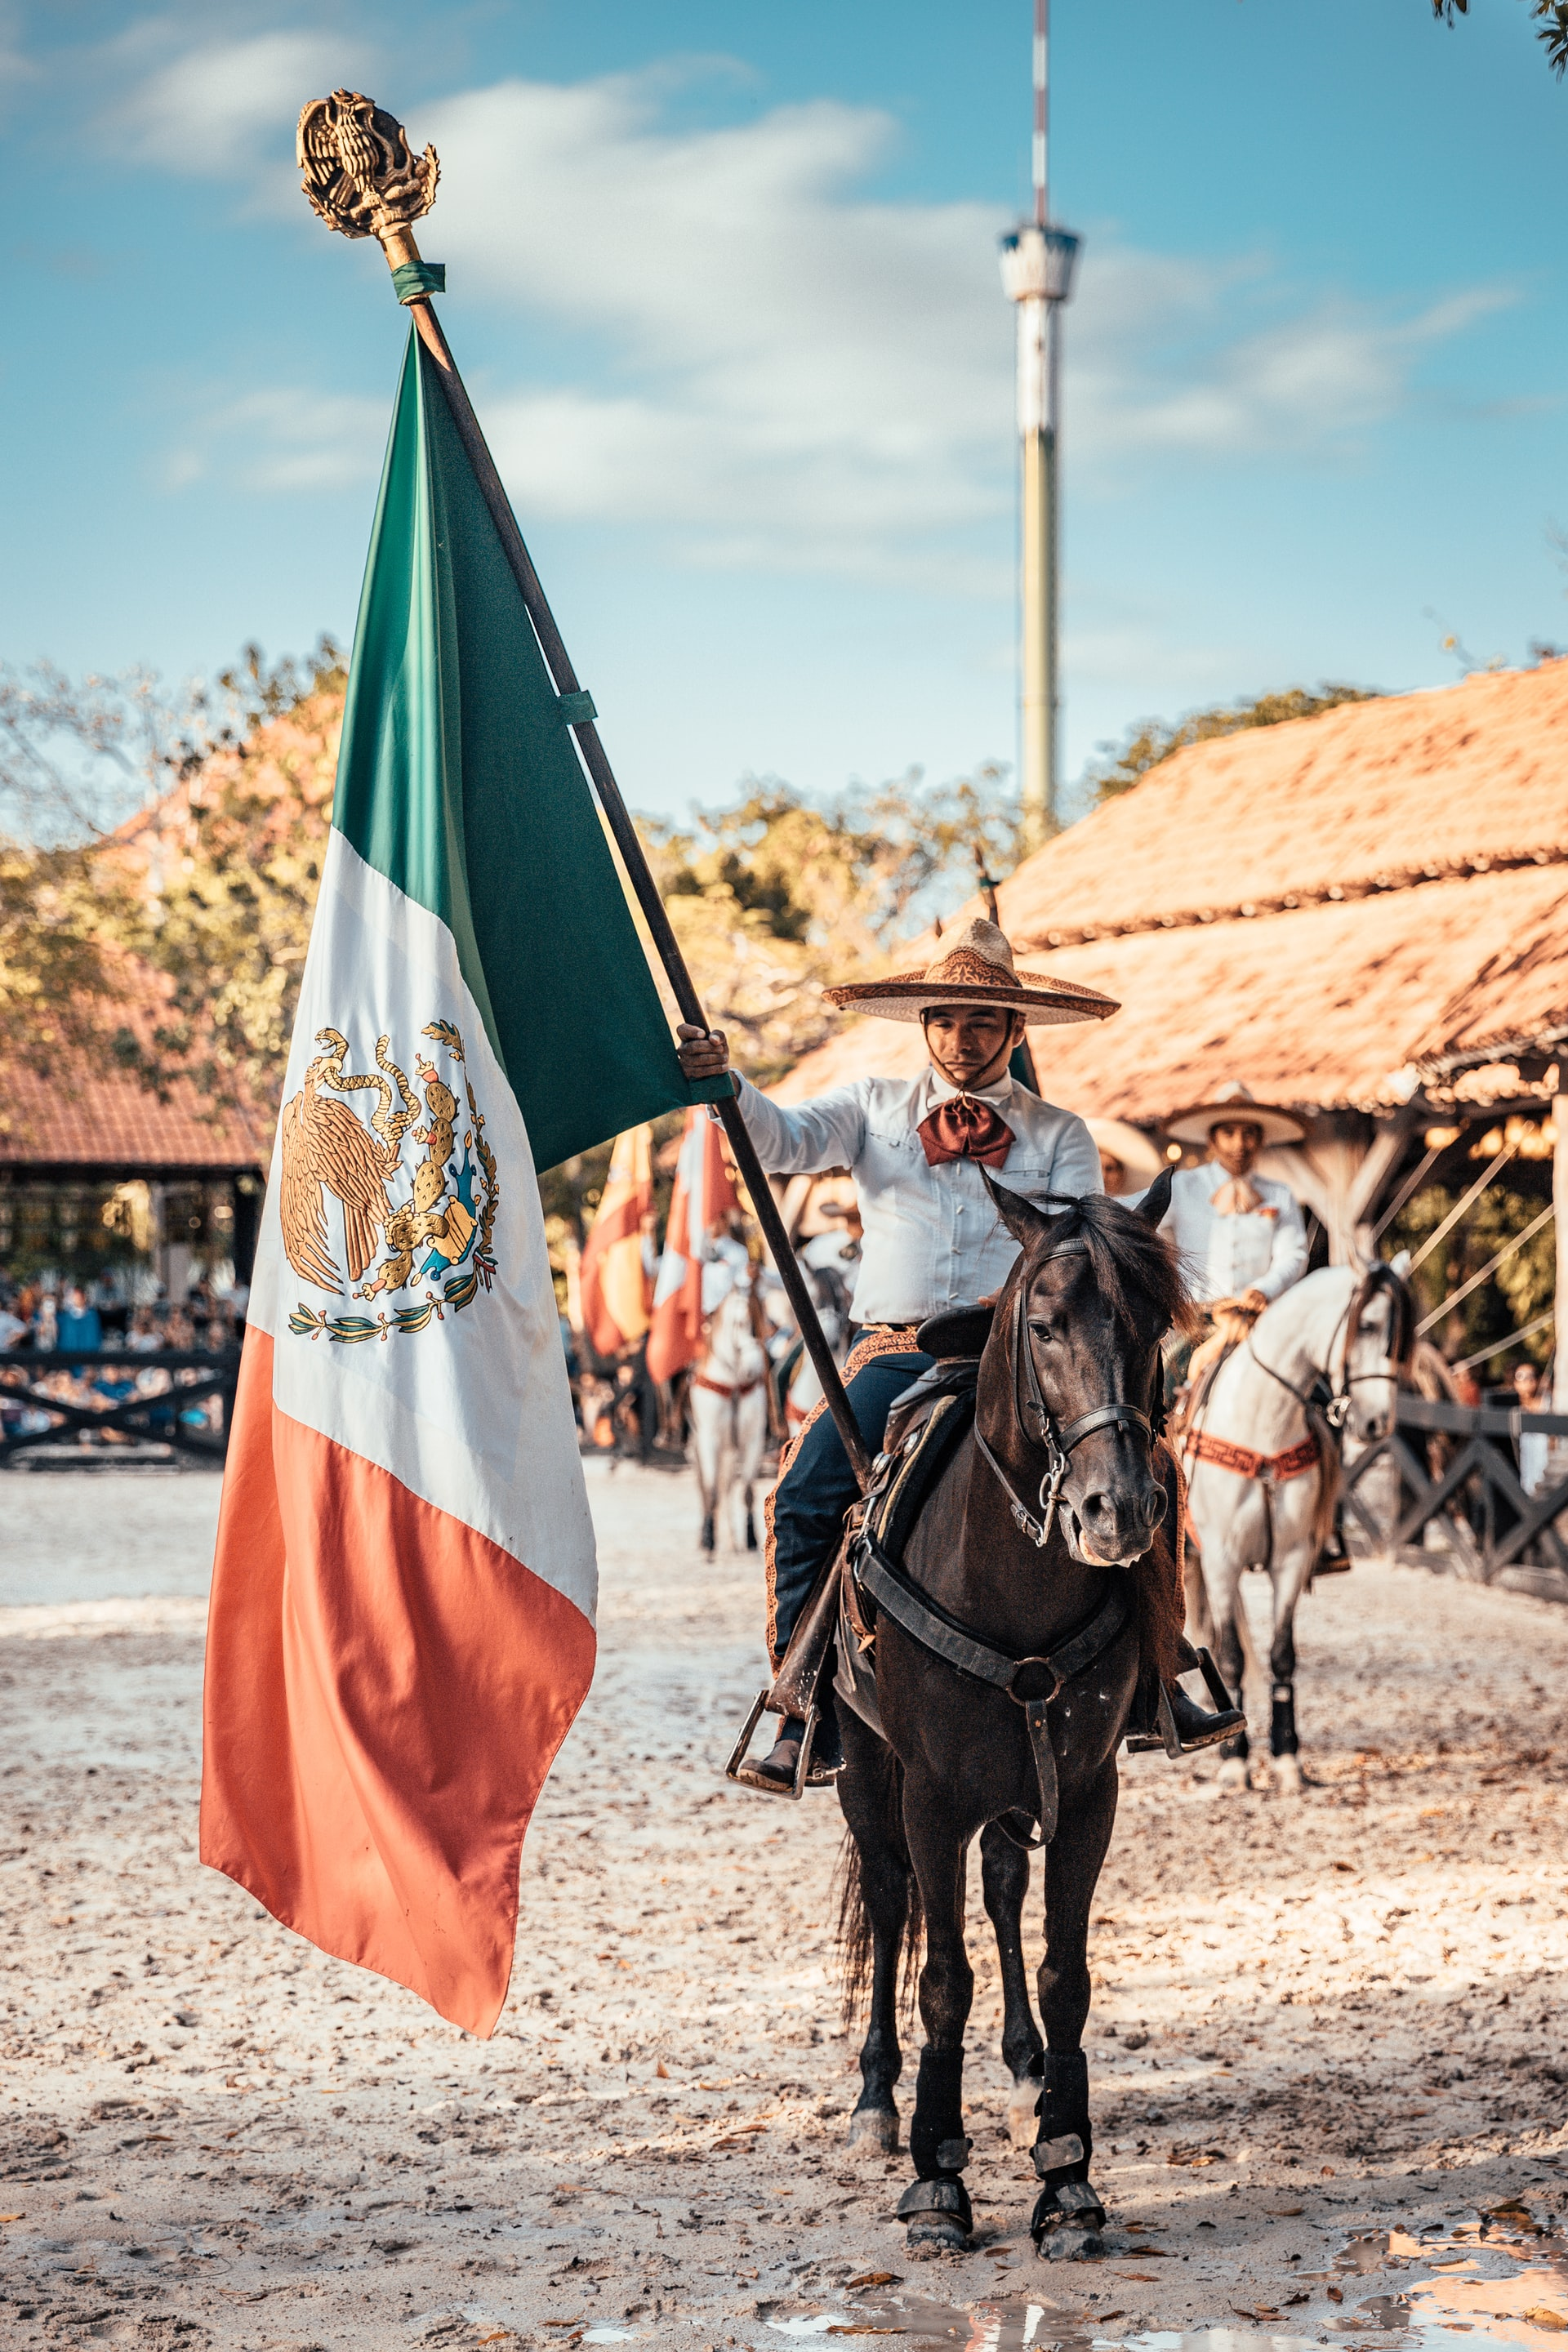 The Mexican Flag and a Charro